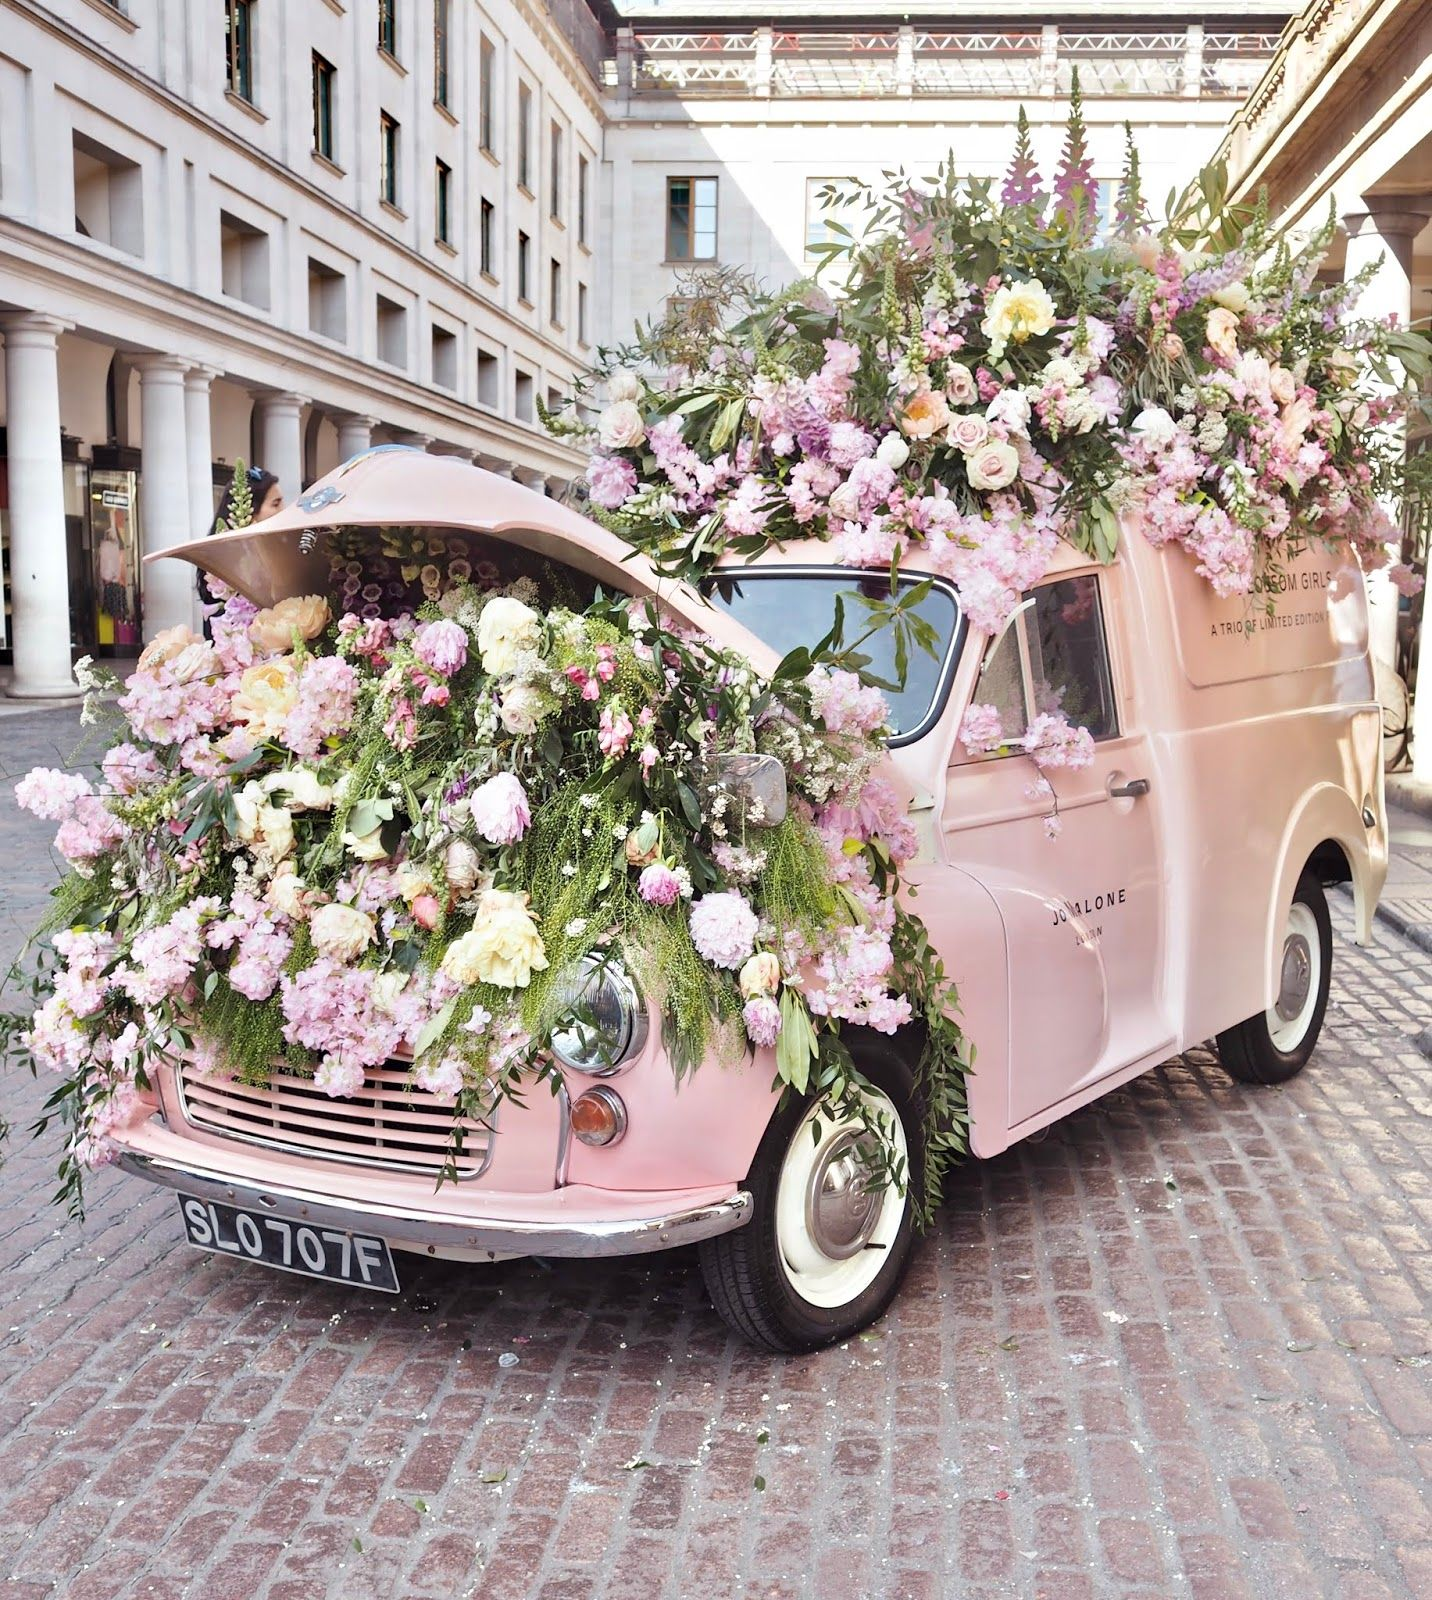 Vlog Chelsea Flower Show And London Trip Dainty Dress Diaries Flower Truck Most Beautiful Flowers Chelsea Flower Show